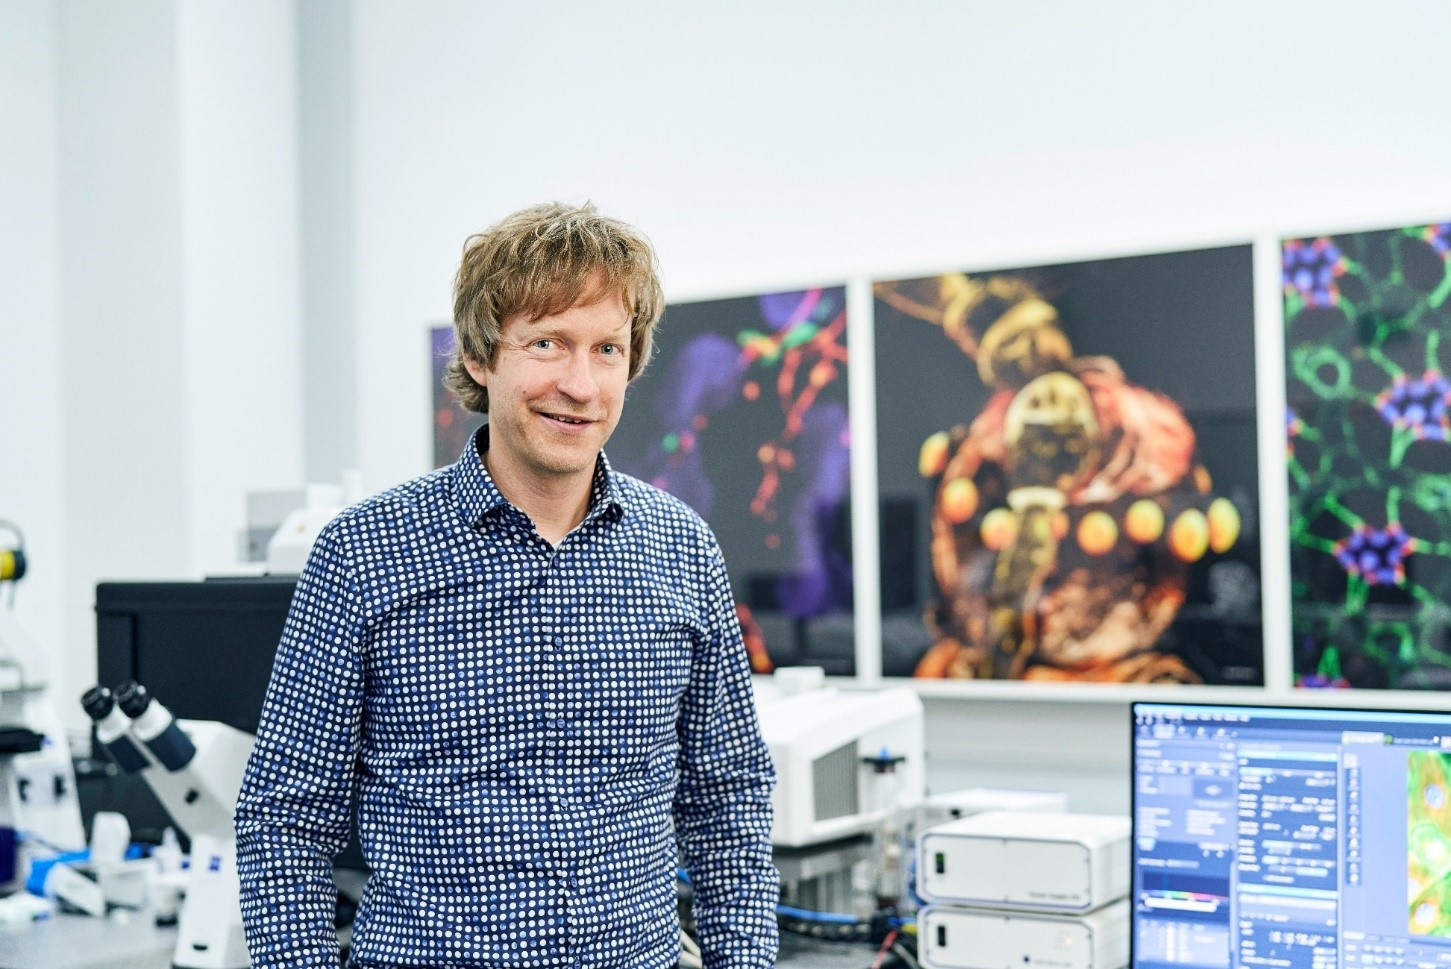 Head of the ZEISS Innovation Hub in Dresden